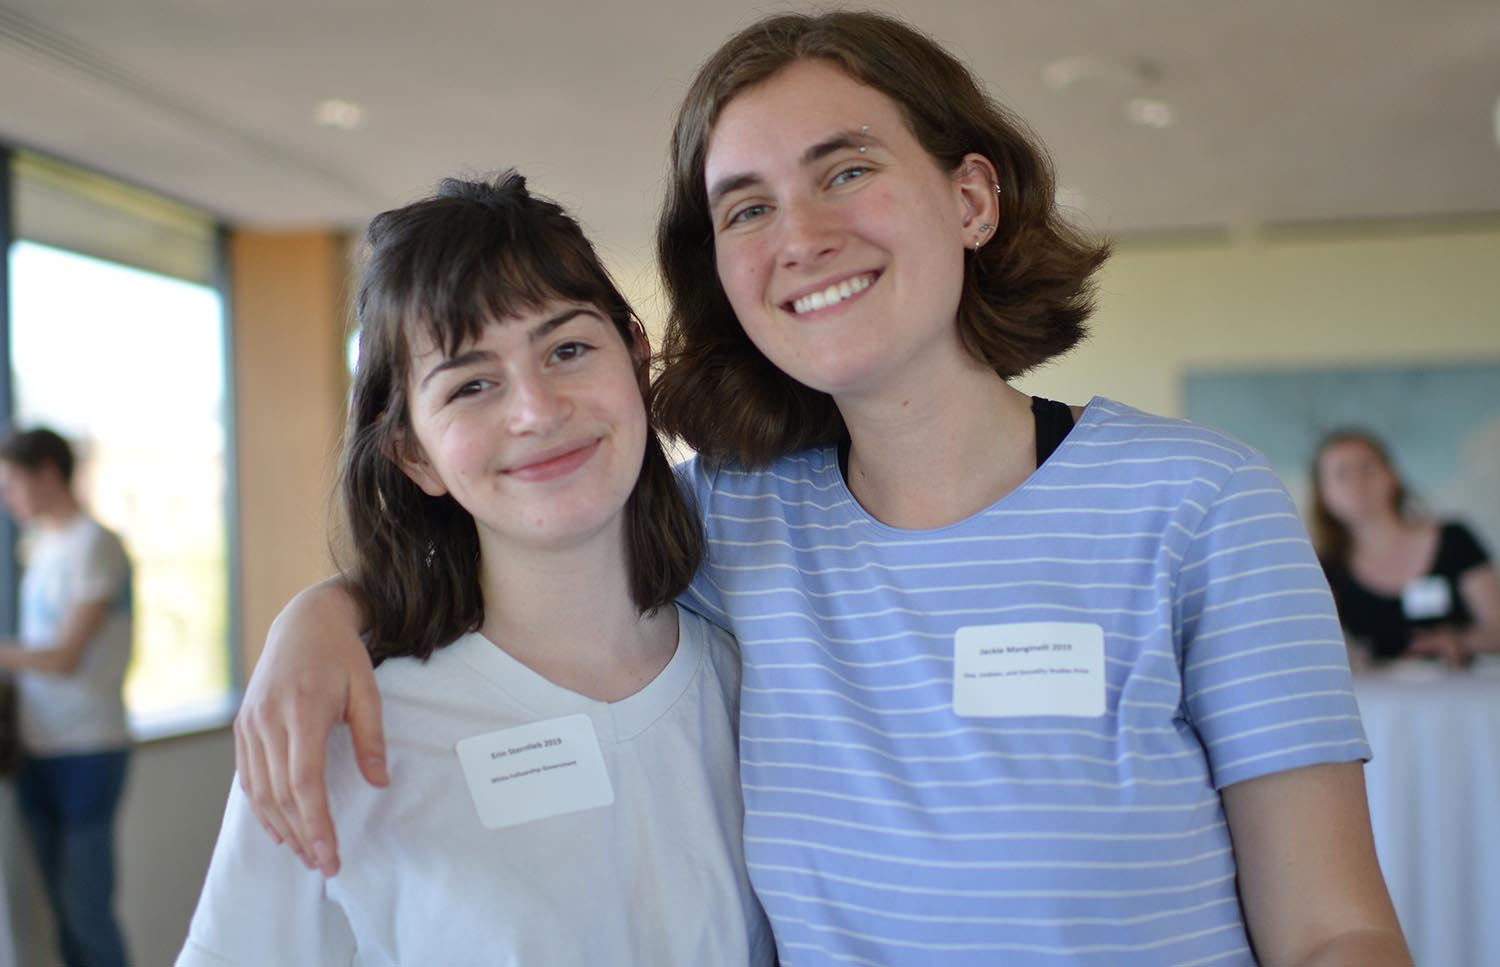 Erin Sternlieb '19 received the White Fellowship for Government. Jackie Manginelli '19 received the Gay, Lesbian, and Sexuality Studies Prize.Erin Sternlieb '19 received the White Fellowship for Government. Jackie Manginelli '19 received the Gay, Lesbian, and Sexuality Studies Prize.